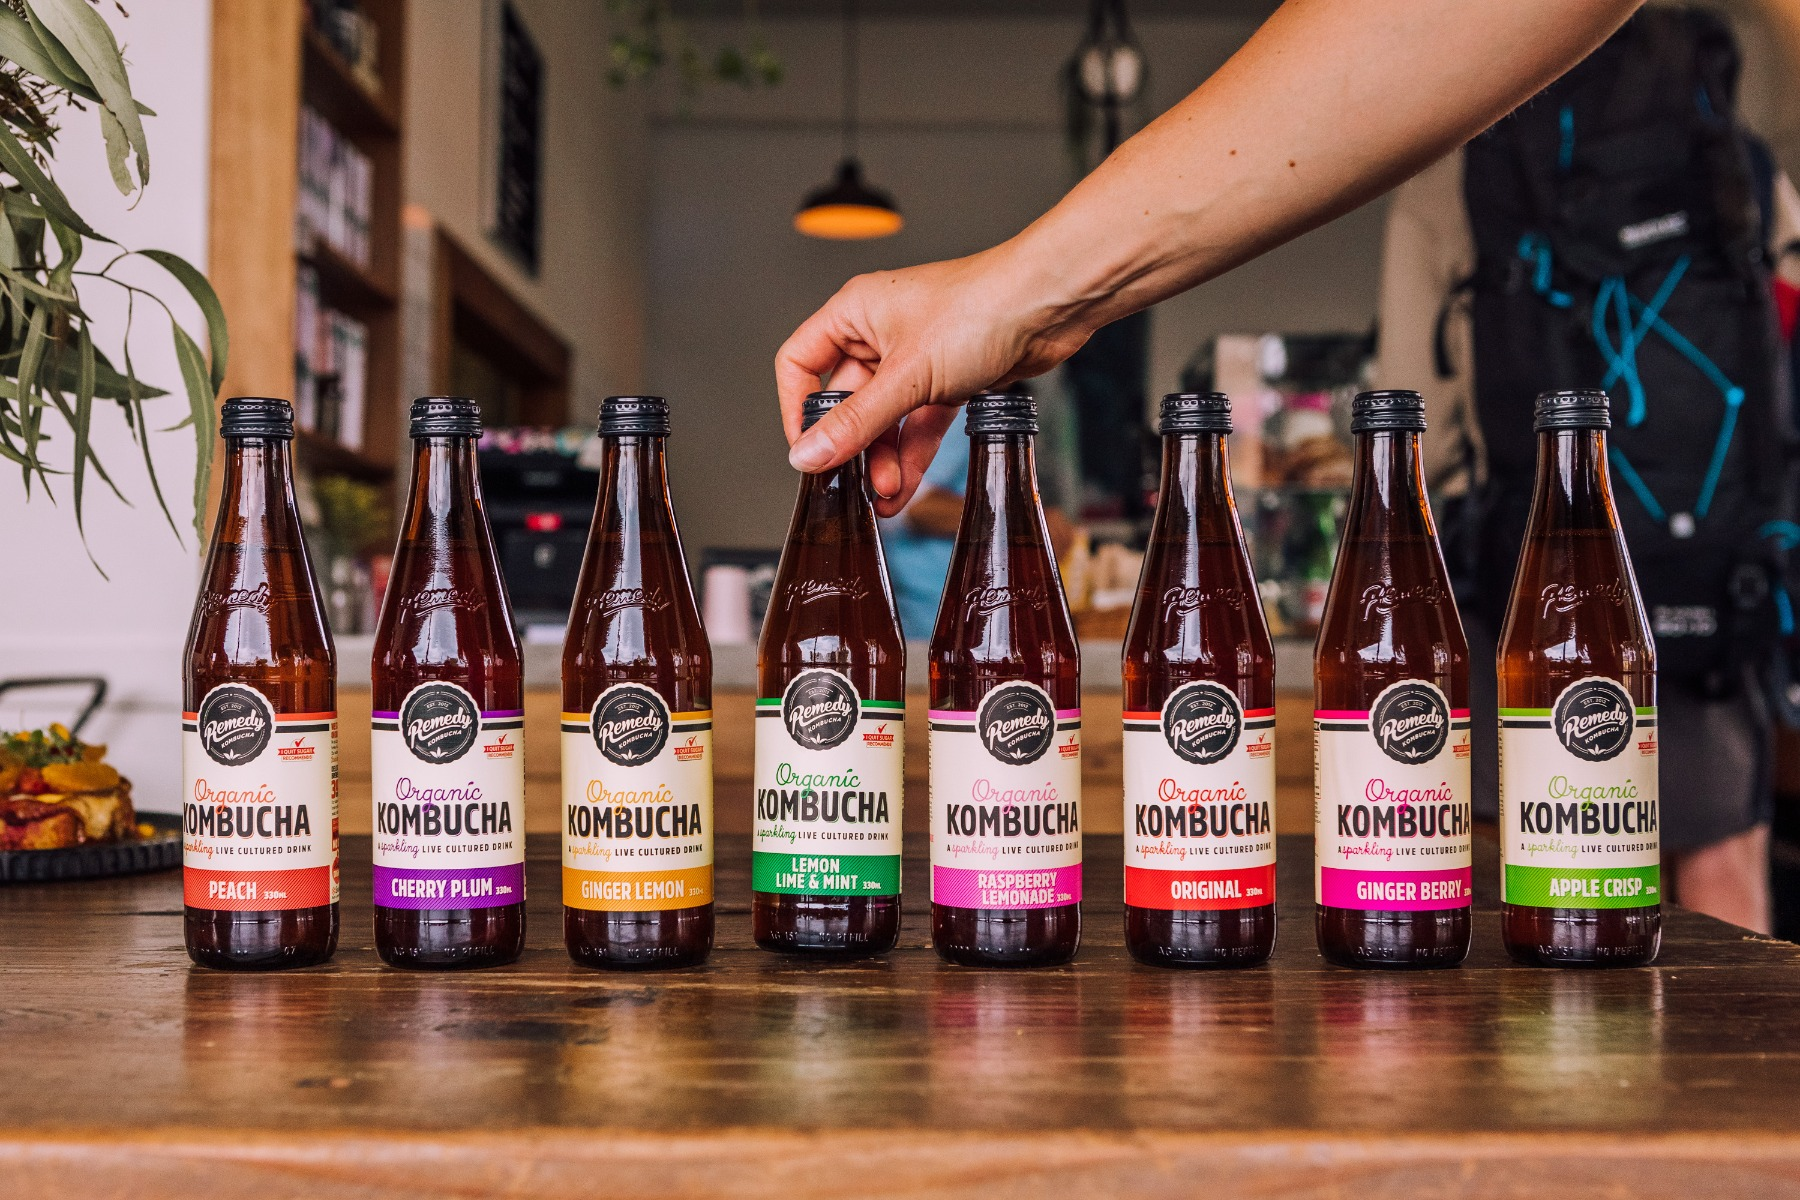 Eight flavours of Remedy Kombucha lined up on a wooden table in a cafe